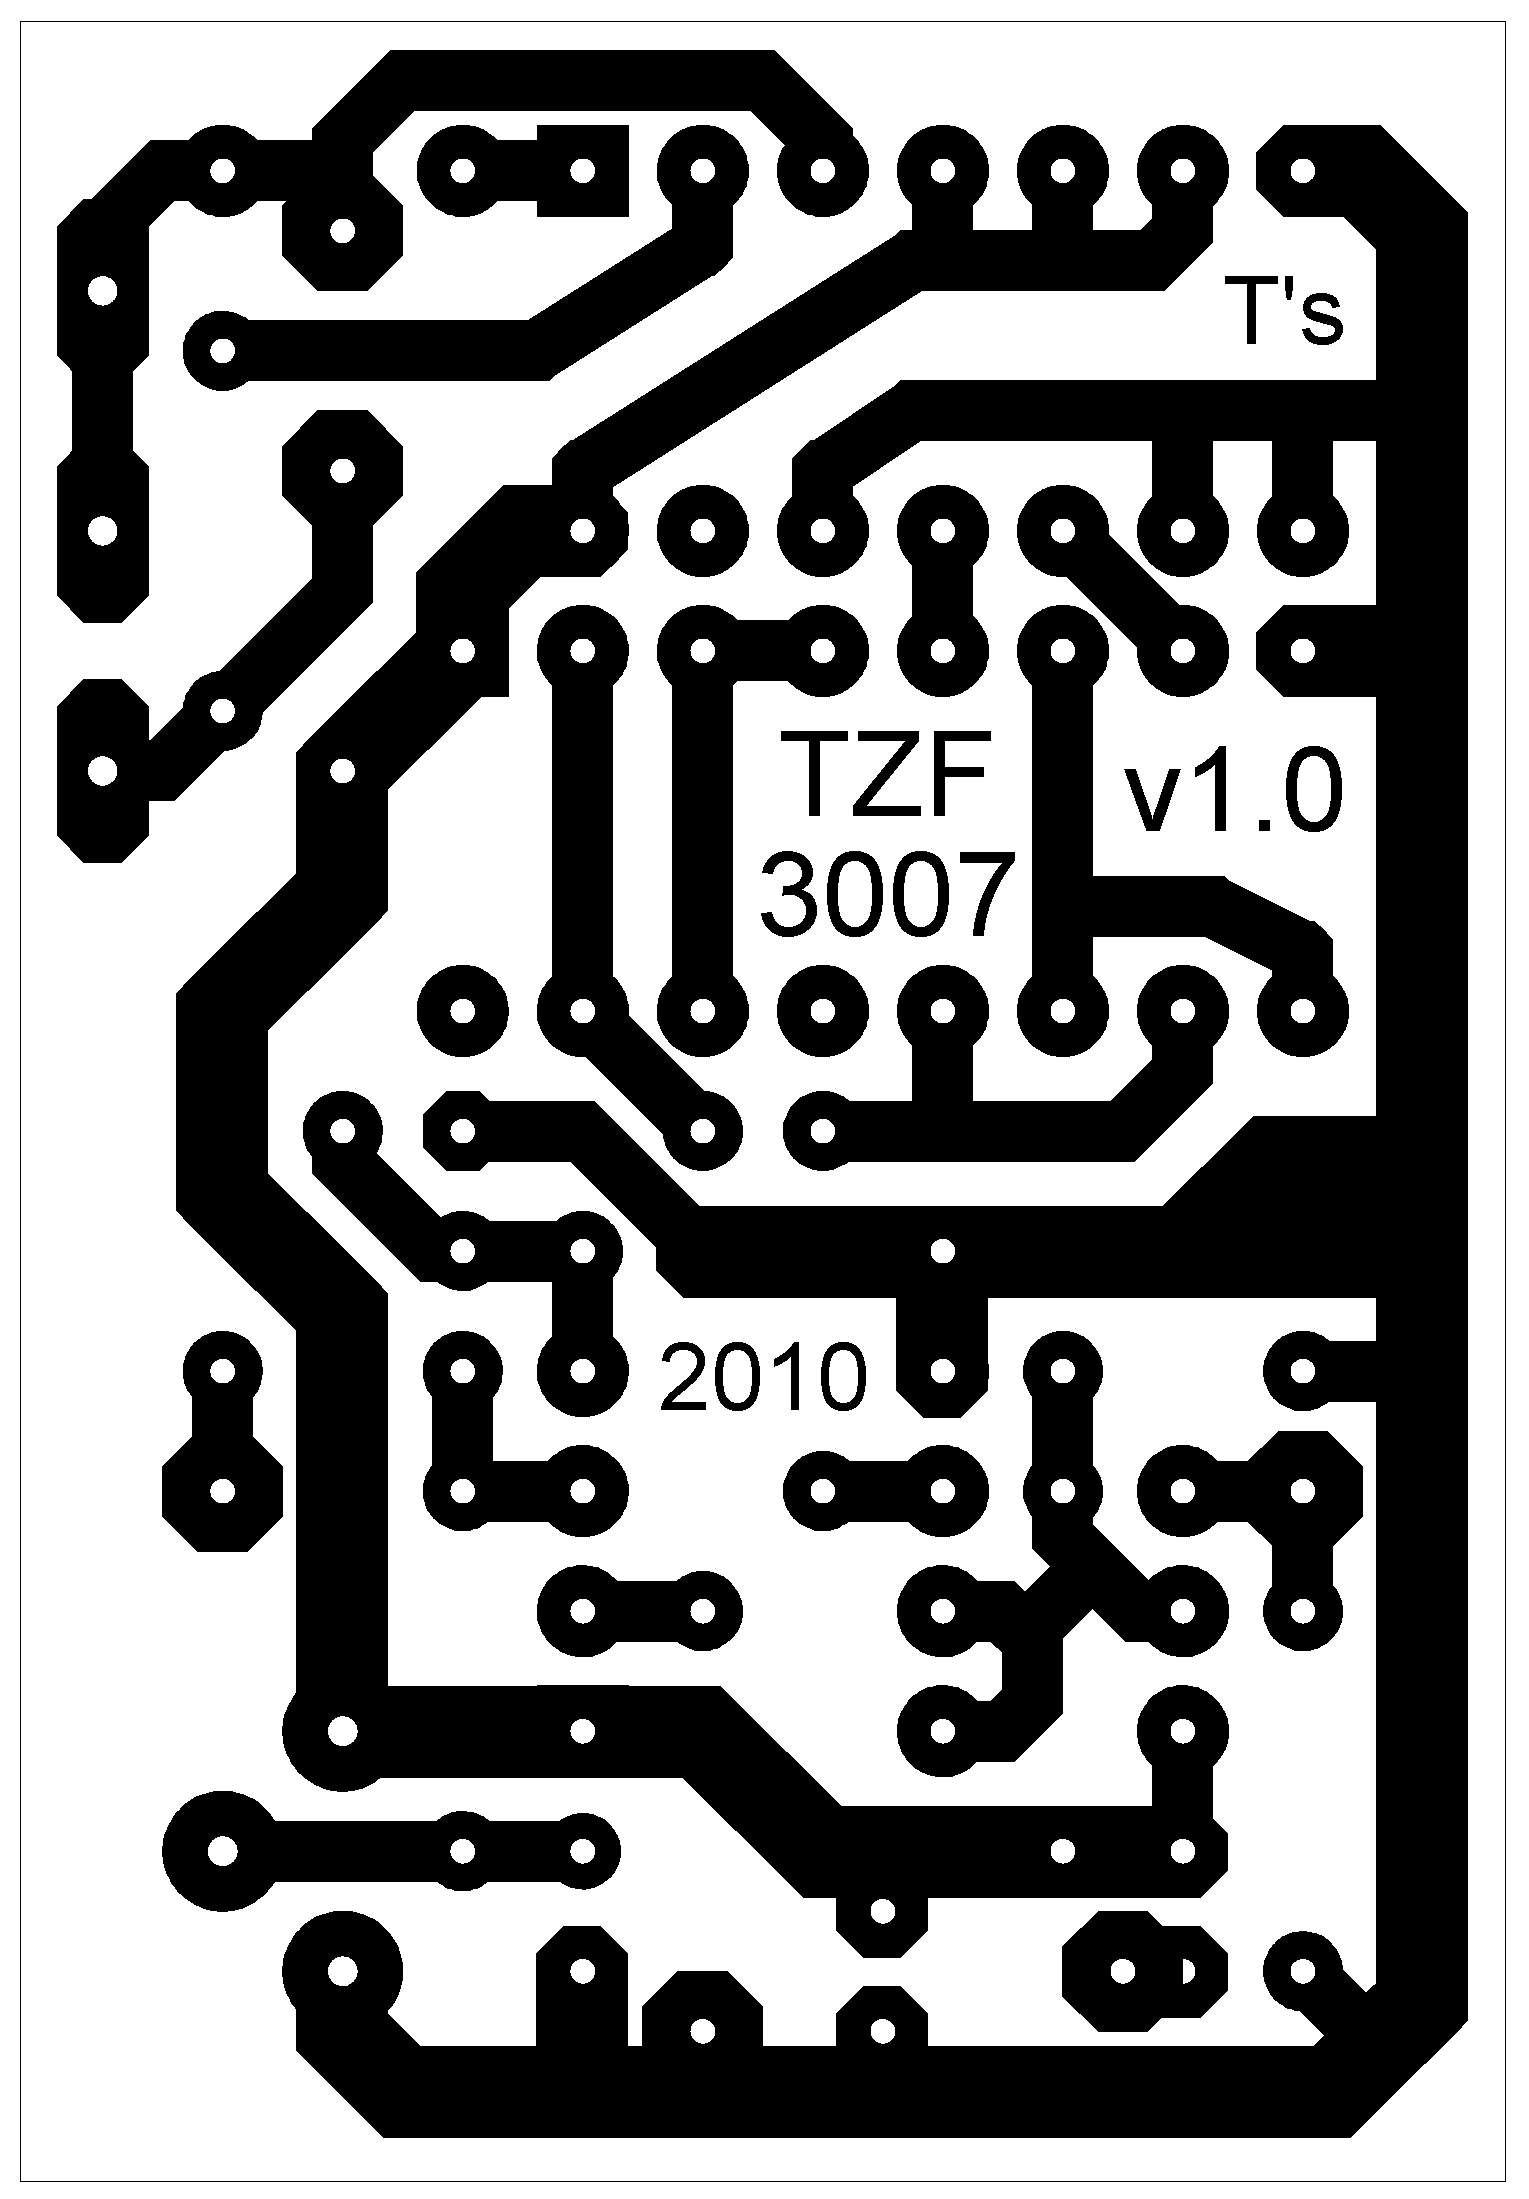 TZF3007 - TZF (short delay) module, MN3007 based